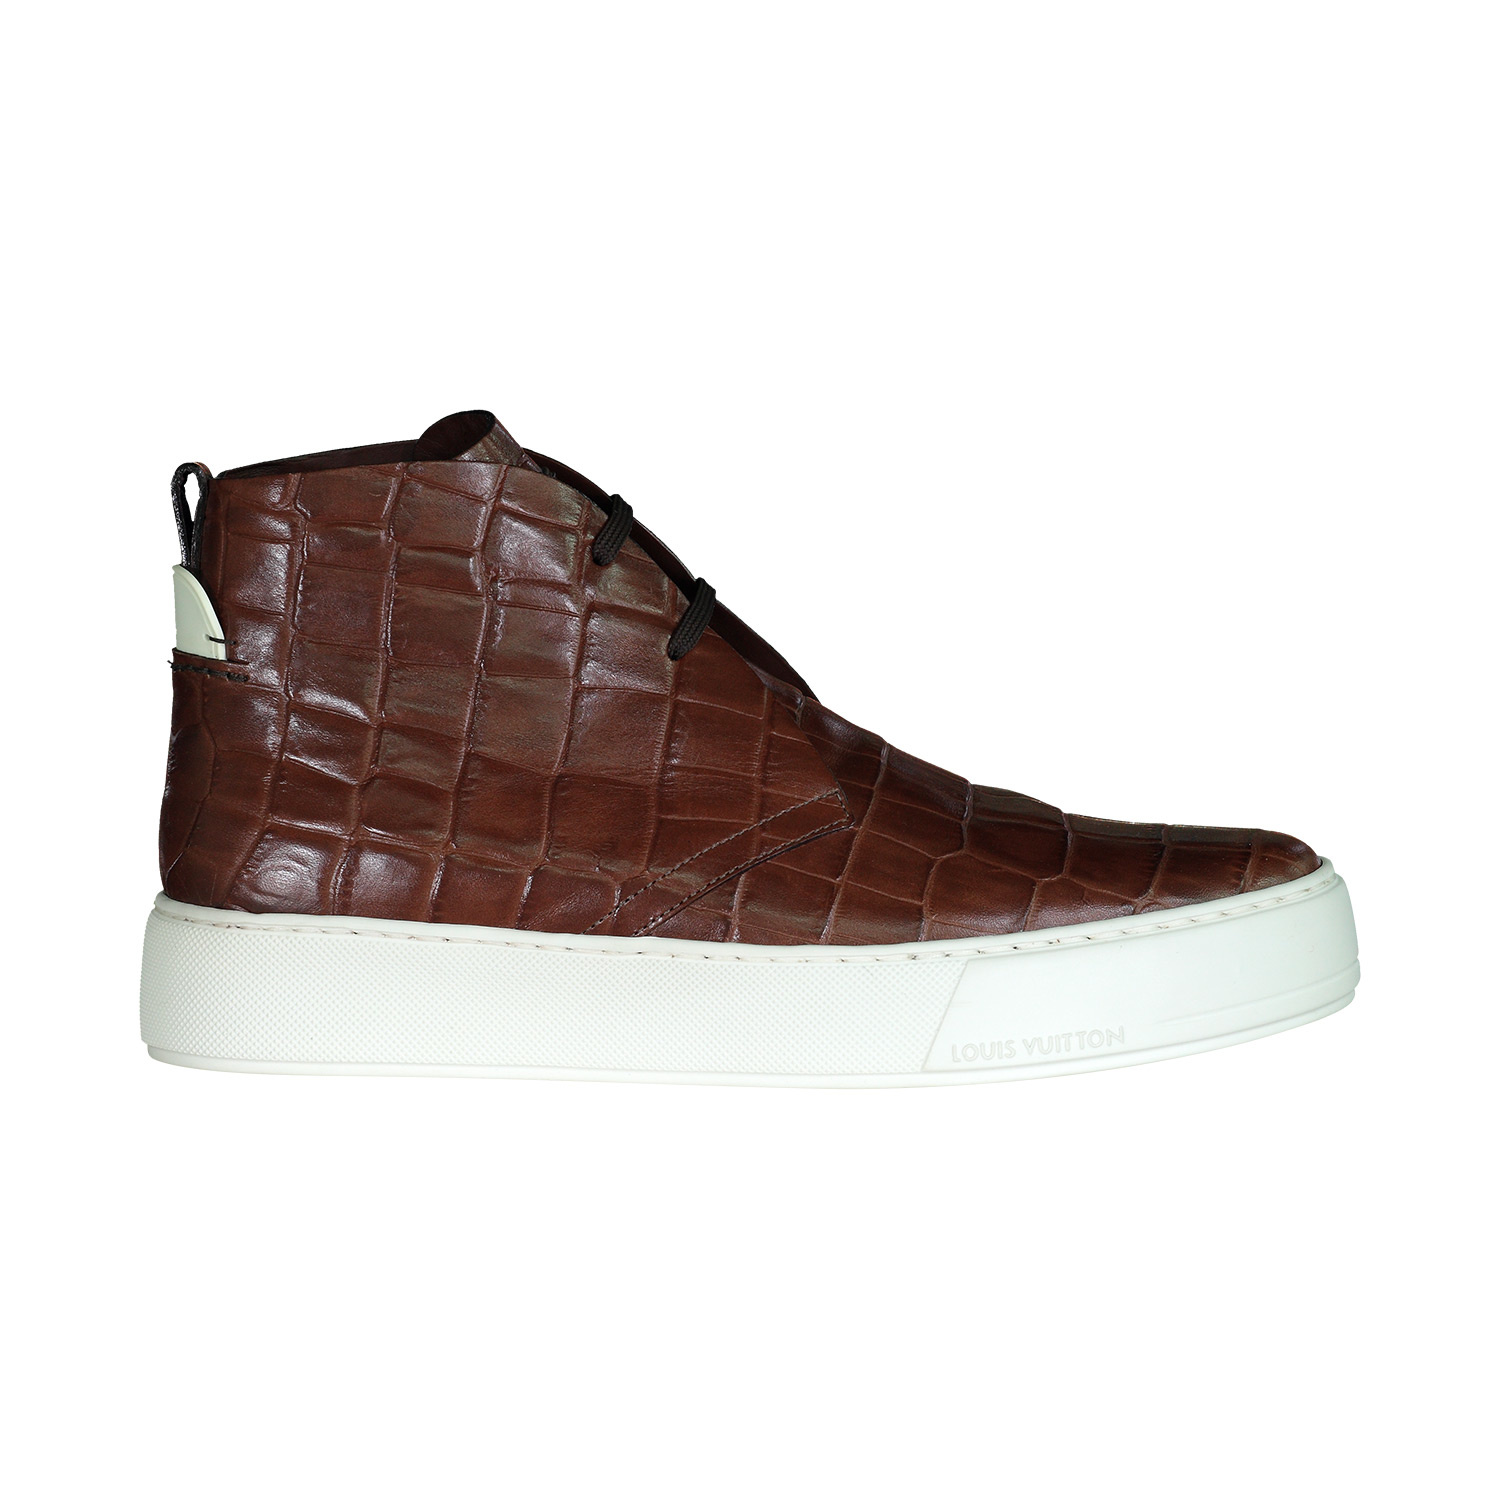 Louis Vuitton Louis Vuitton Brown Croc Embossed Desert High-top Sneakers